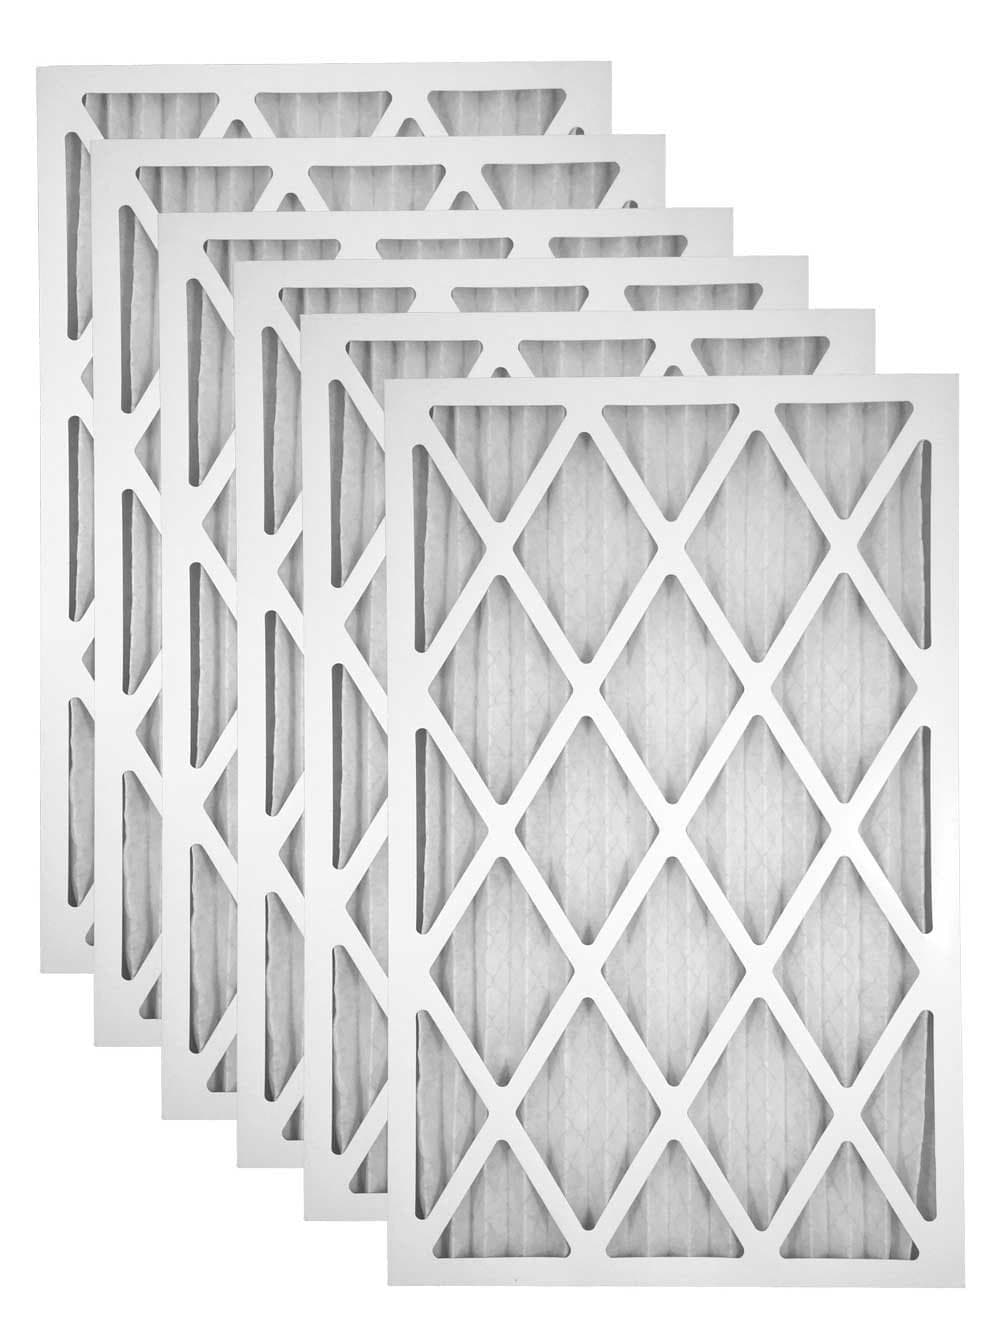 12x25x2 Merv 8 AC Furnace Filter - Case of 6